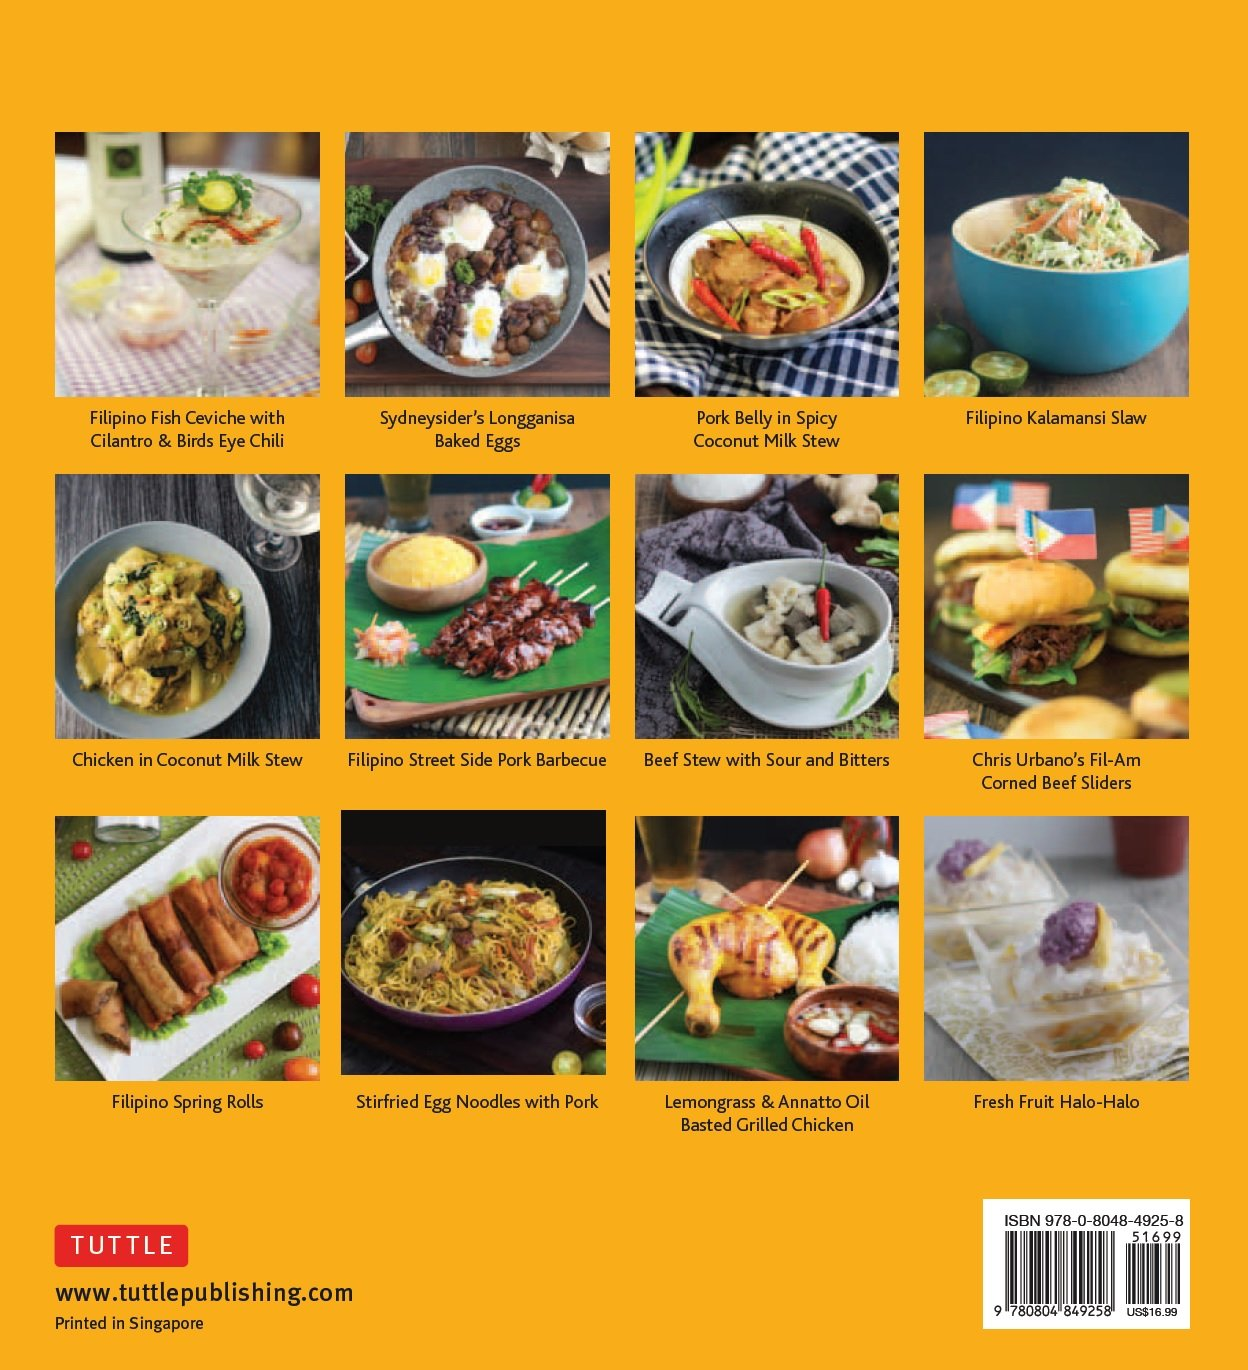 The world of filipino cooking food and fun in the philippines by the world of filipino cooking food and fun in the philippines by chris urbano of maputing cooking over 90 recipes chris urbano 9780804849258 forumfinder Gallery